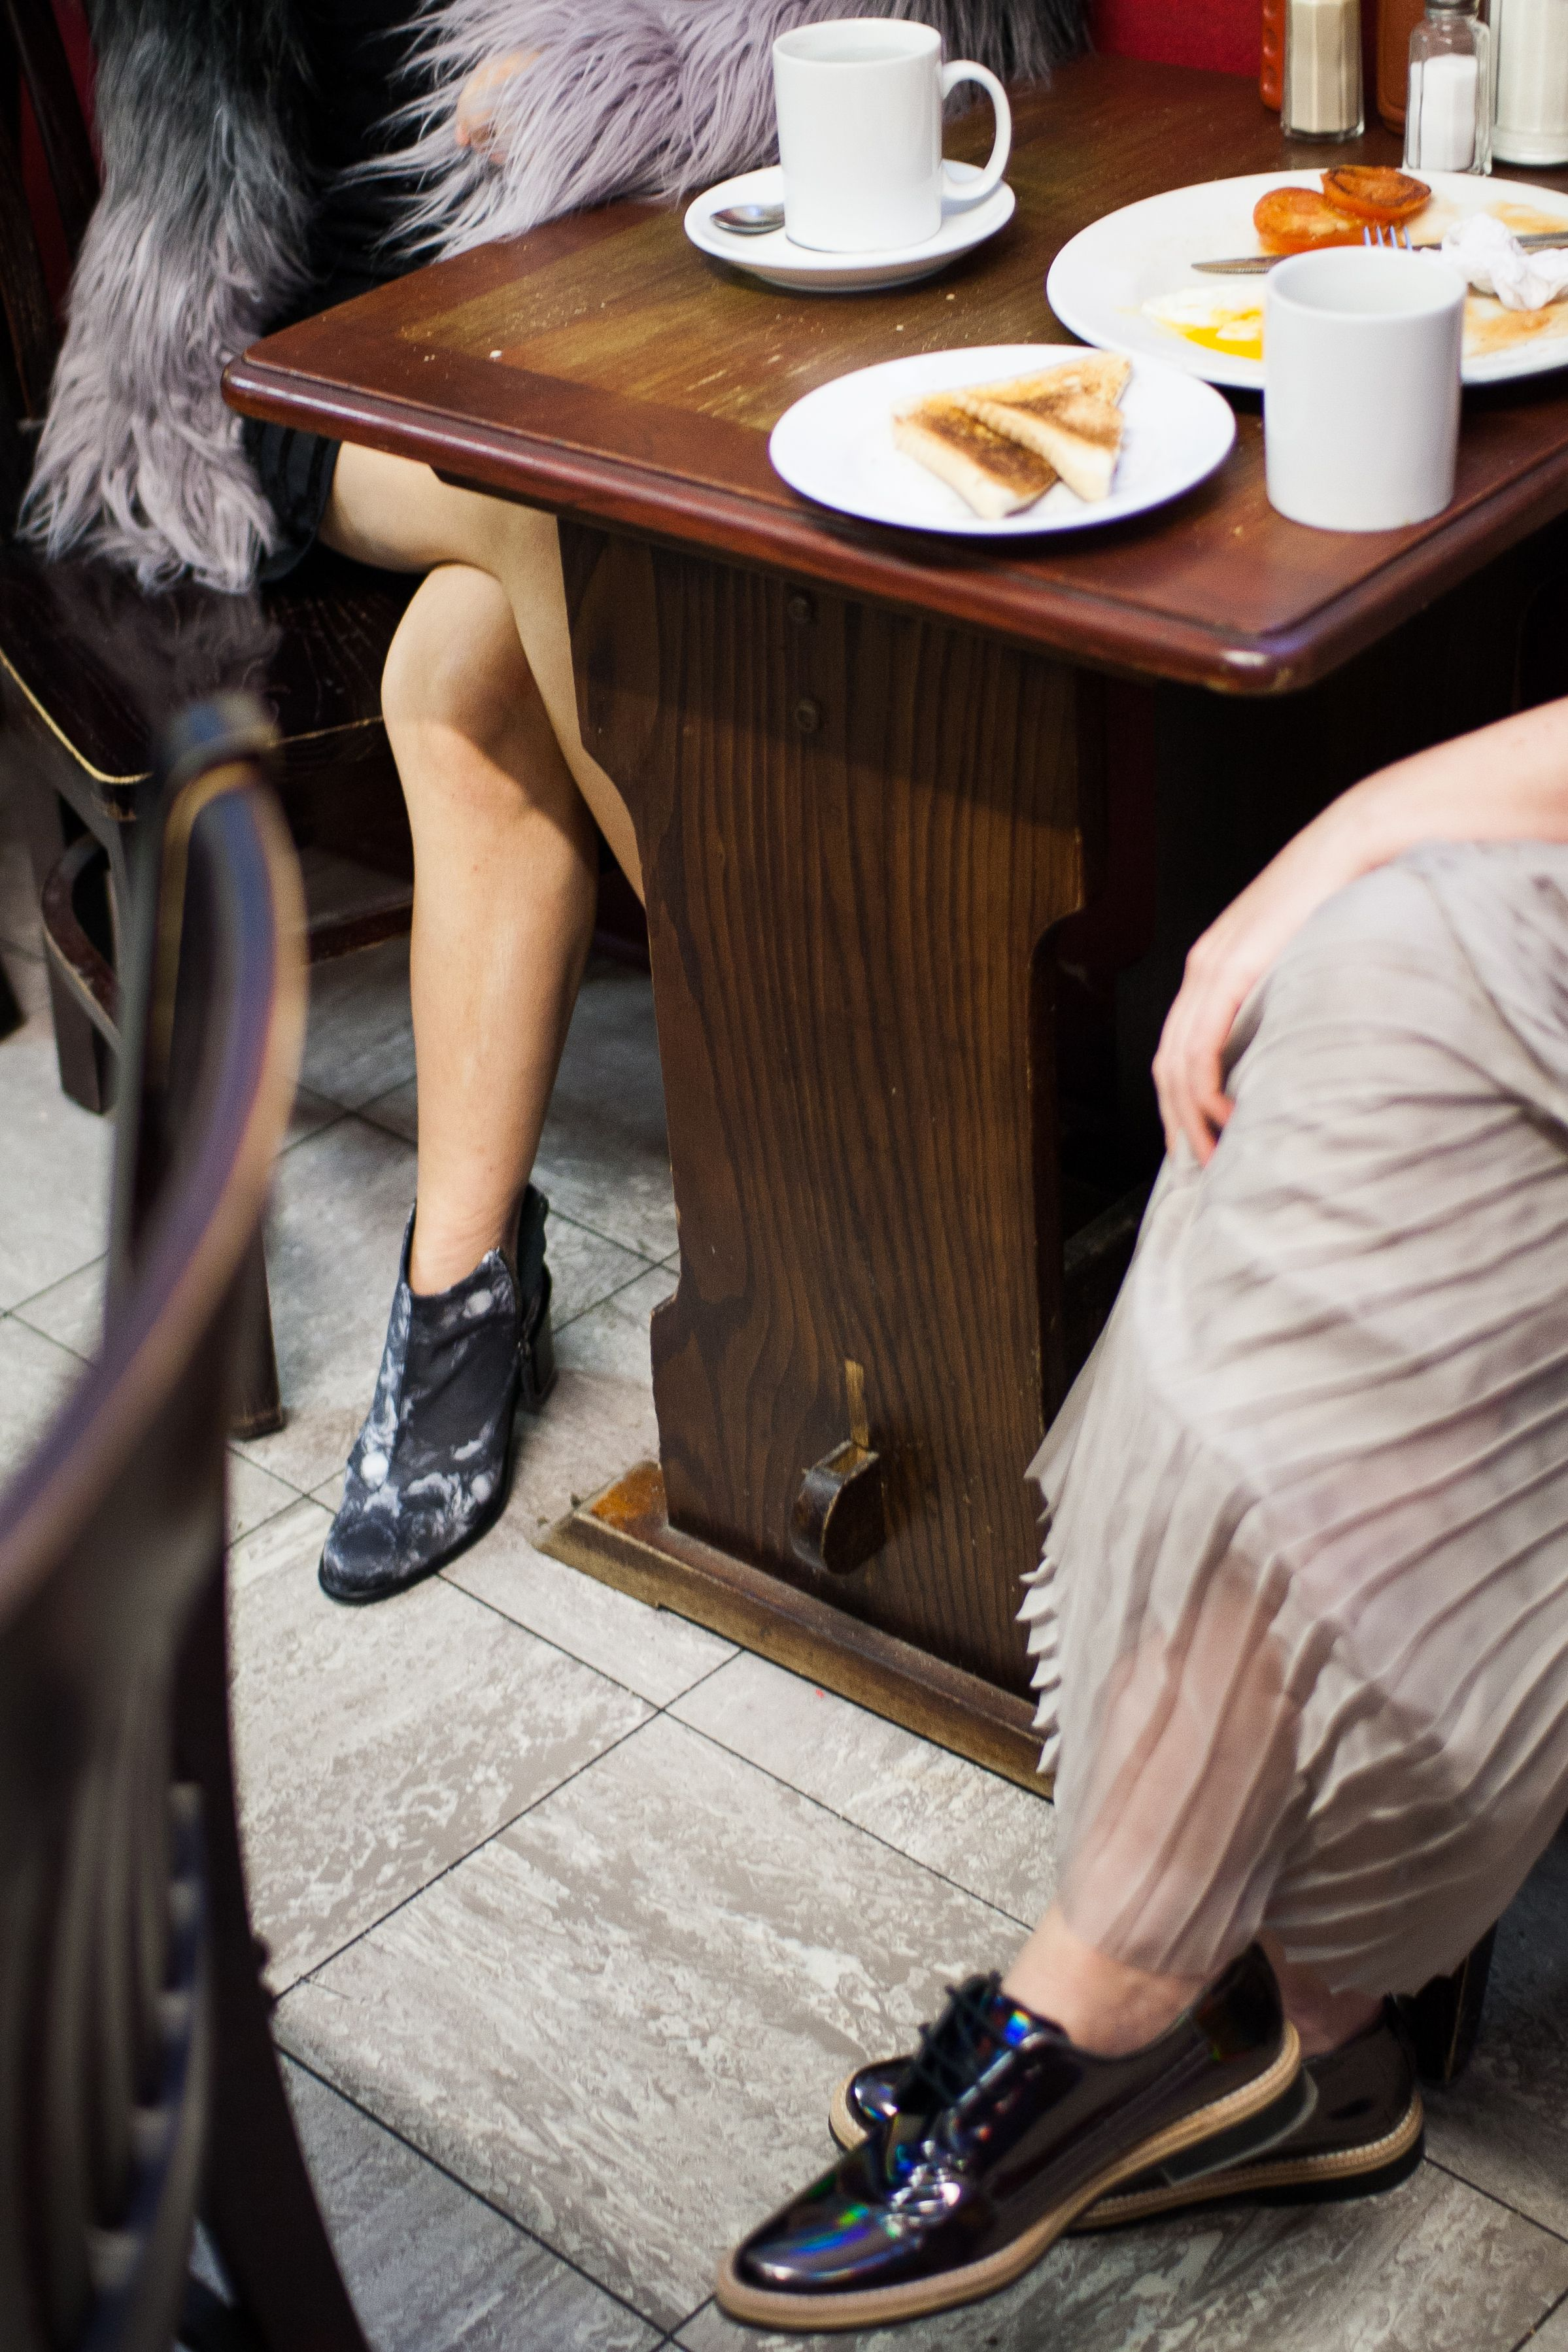 #Miista shoes for breakfast! Photography by Sergio Jensen, on location at Franco's Cafe, Rivington Street #Shoreditch. #AIDA